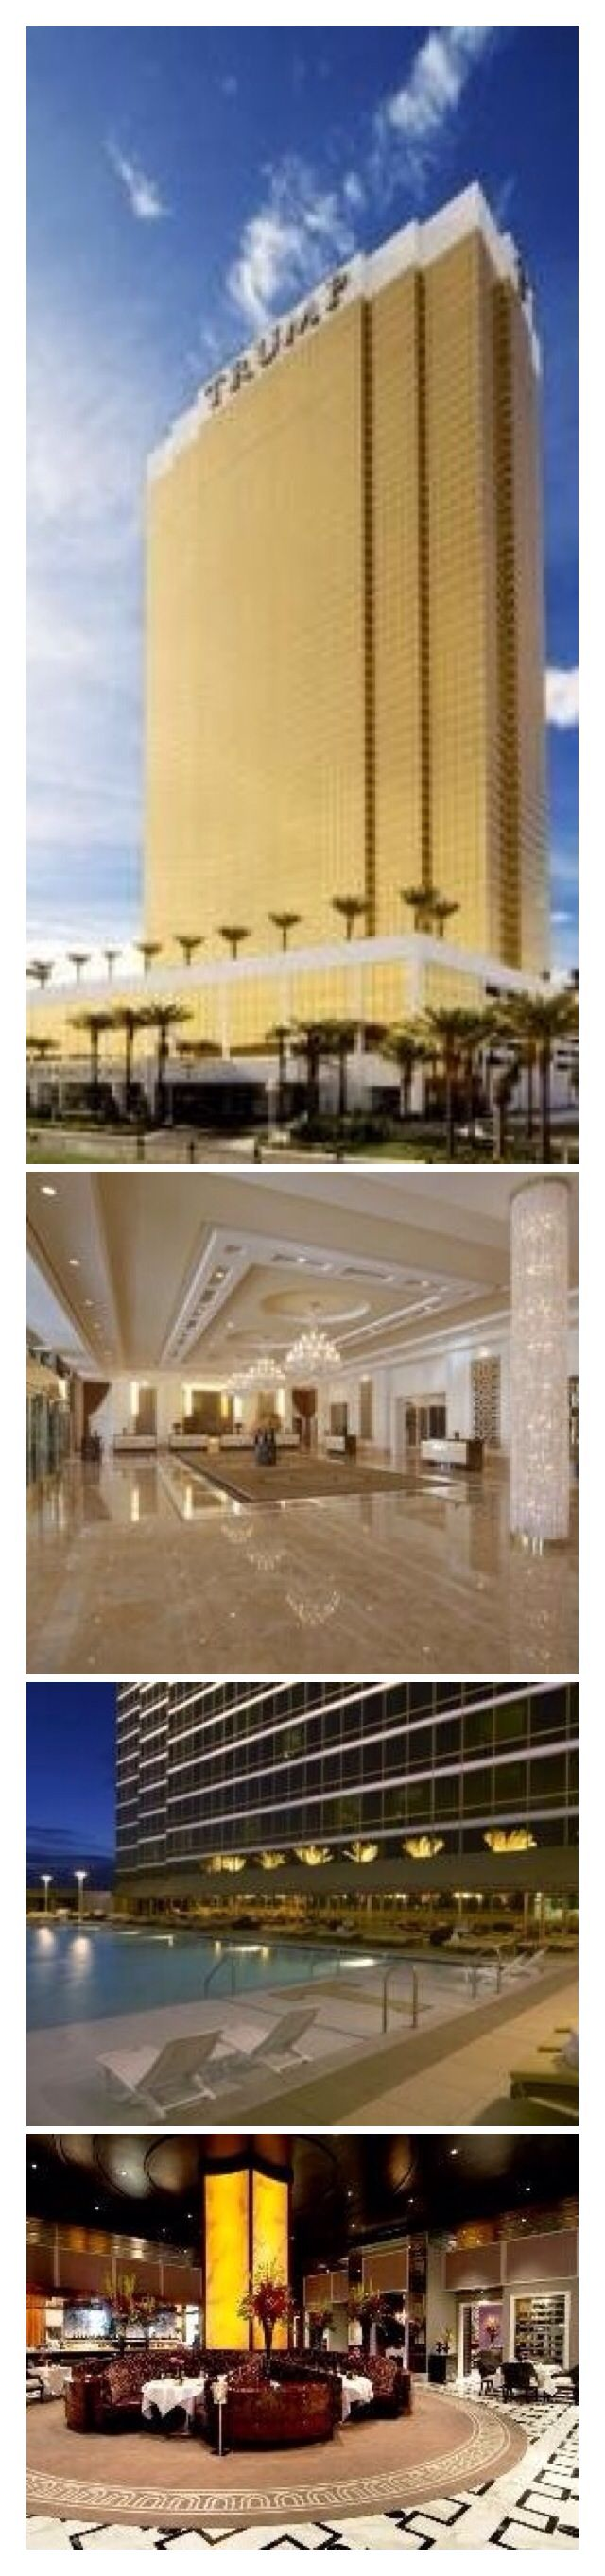 ~Trump Towers Hotel/Casino ~ Las Vegas | House of Beccaria